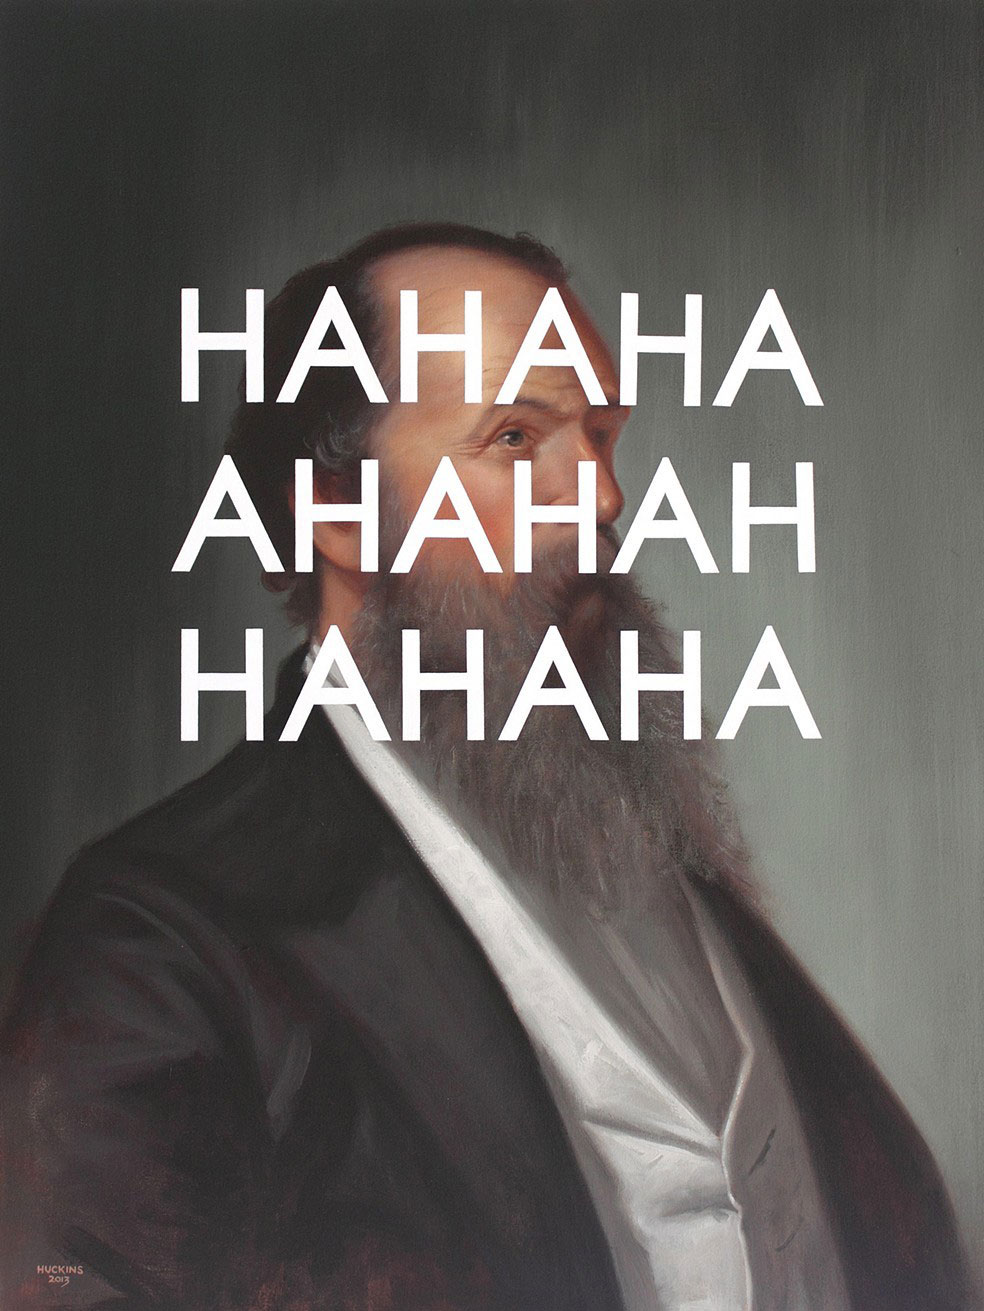 Shawn Huckins, Major James S Rollins: HAHAHA AHAHAHA HAHAHA, acrylic on canvas, 32 x 24 in (81 x 61 cm), 2013. Private collection.